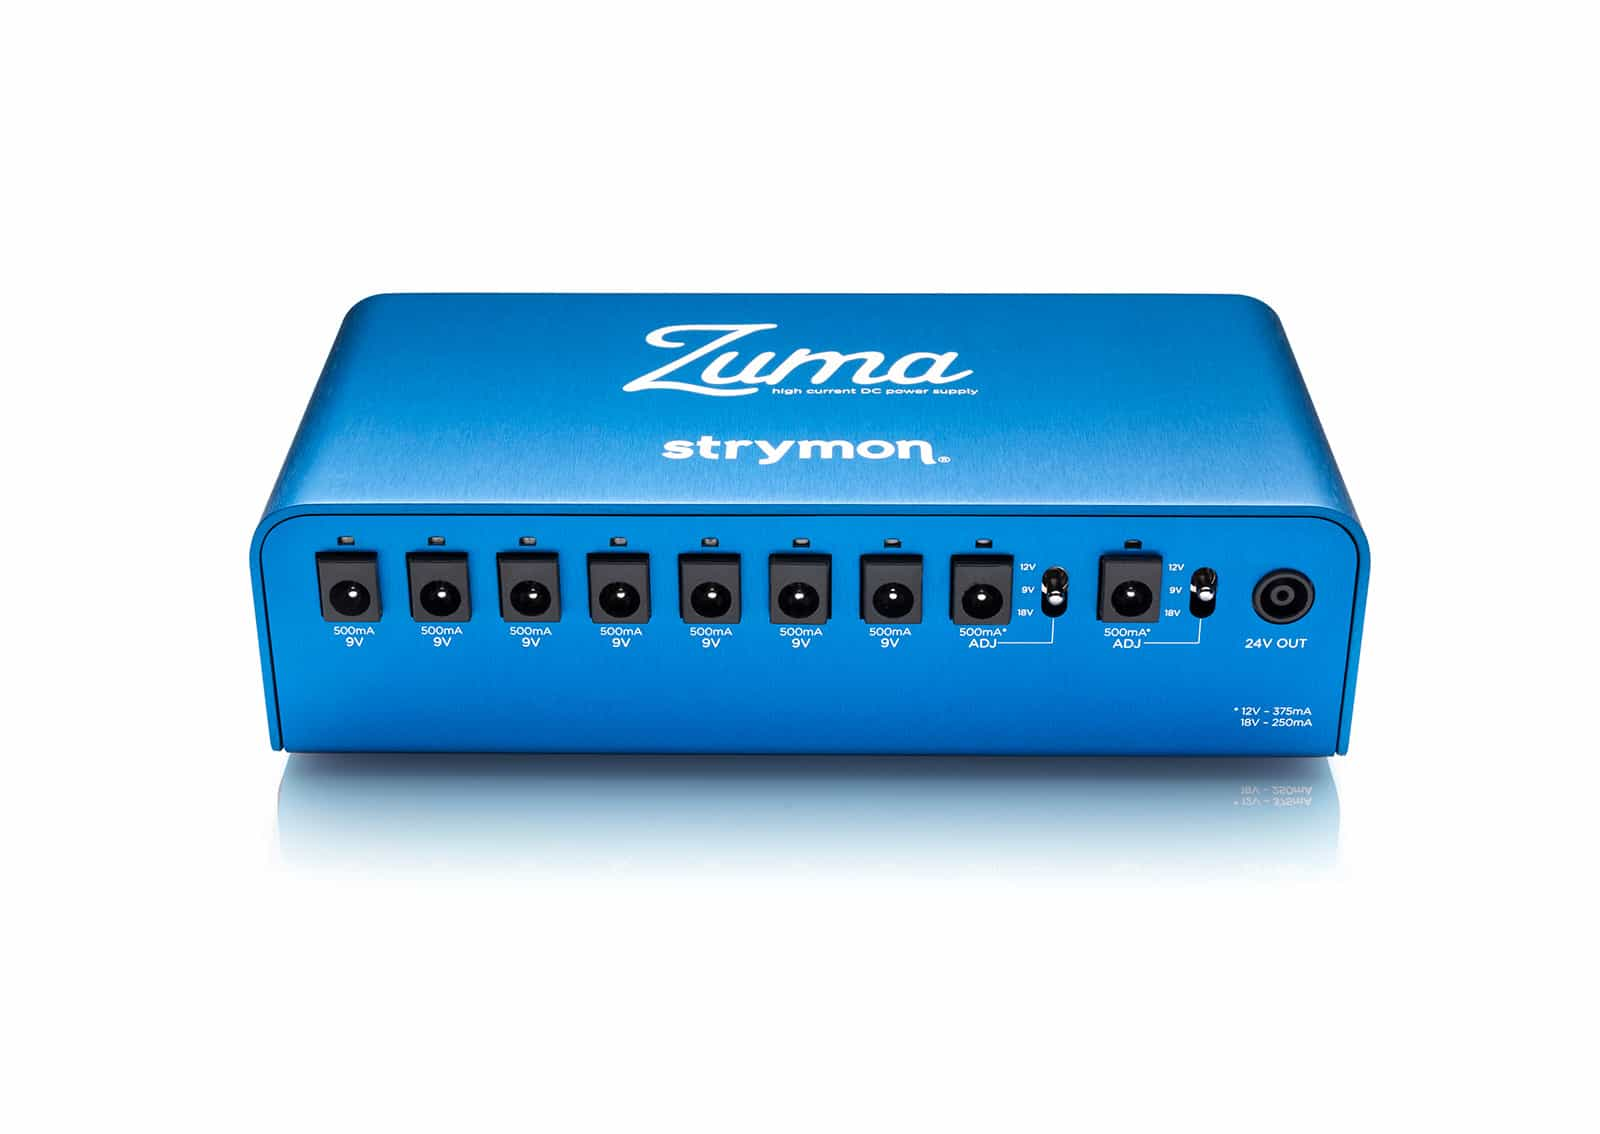 Zuma Support Strymon 24v Power Supply 18a Single Output